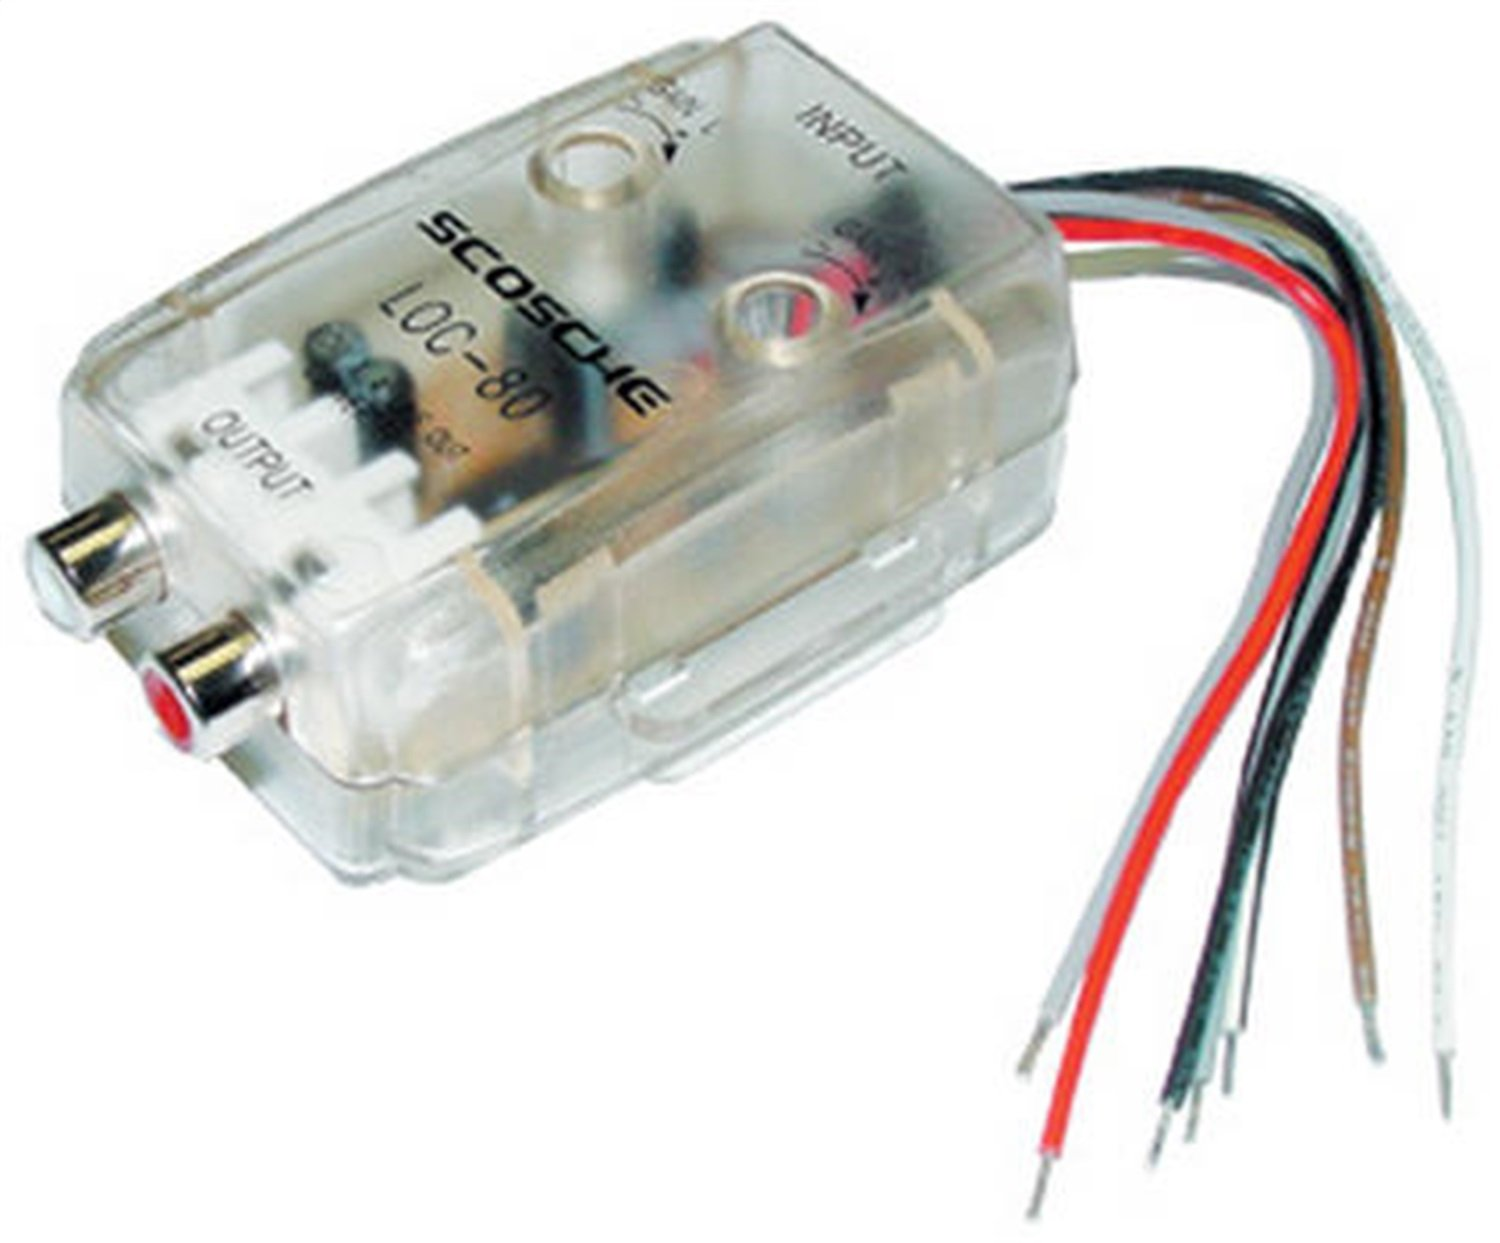 Car Amplifier Wiring Kits | Amazon.com